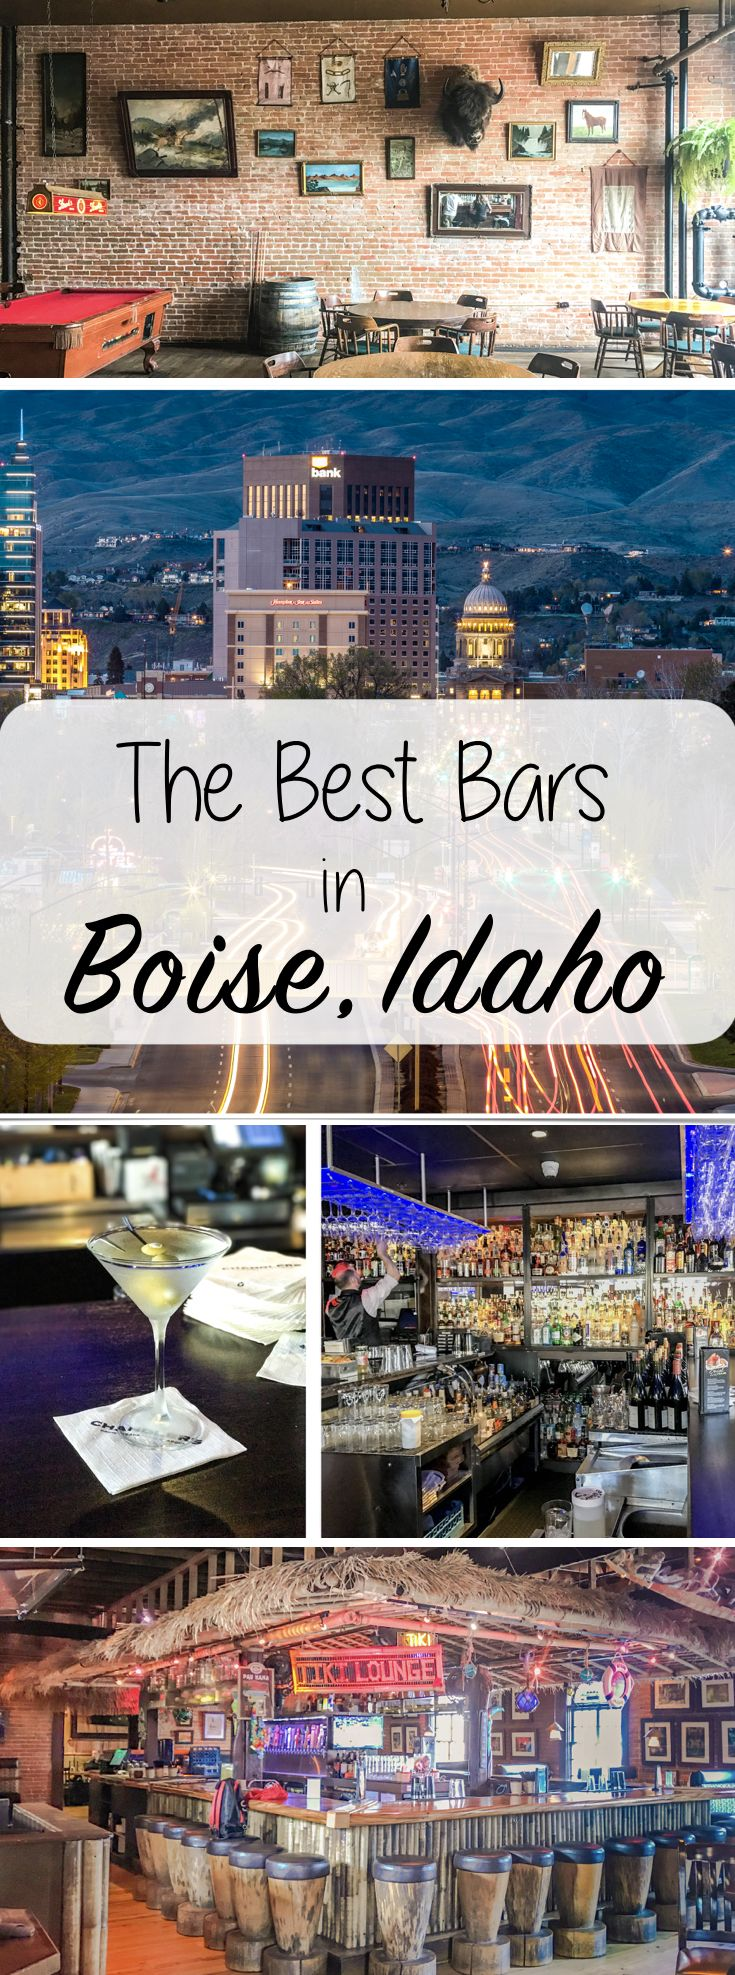 The Best Bars in Boise